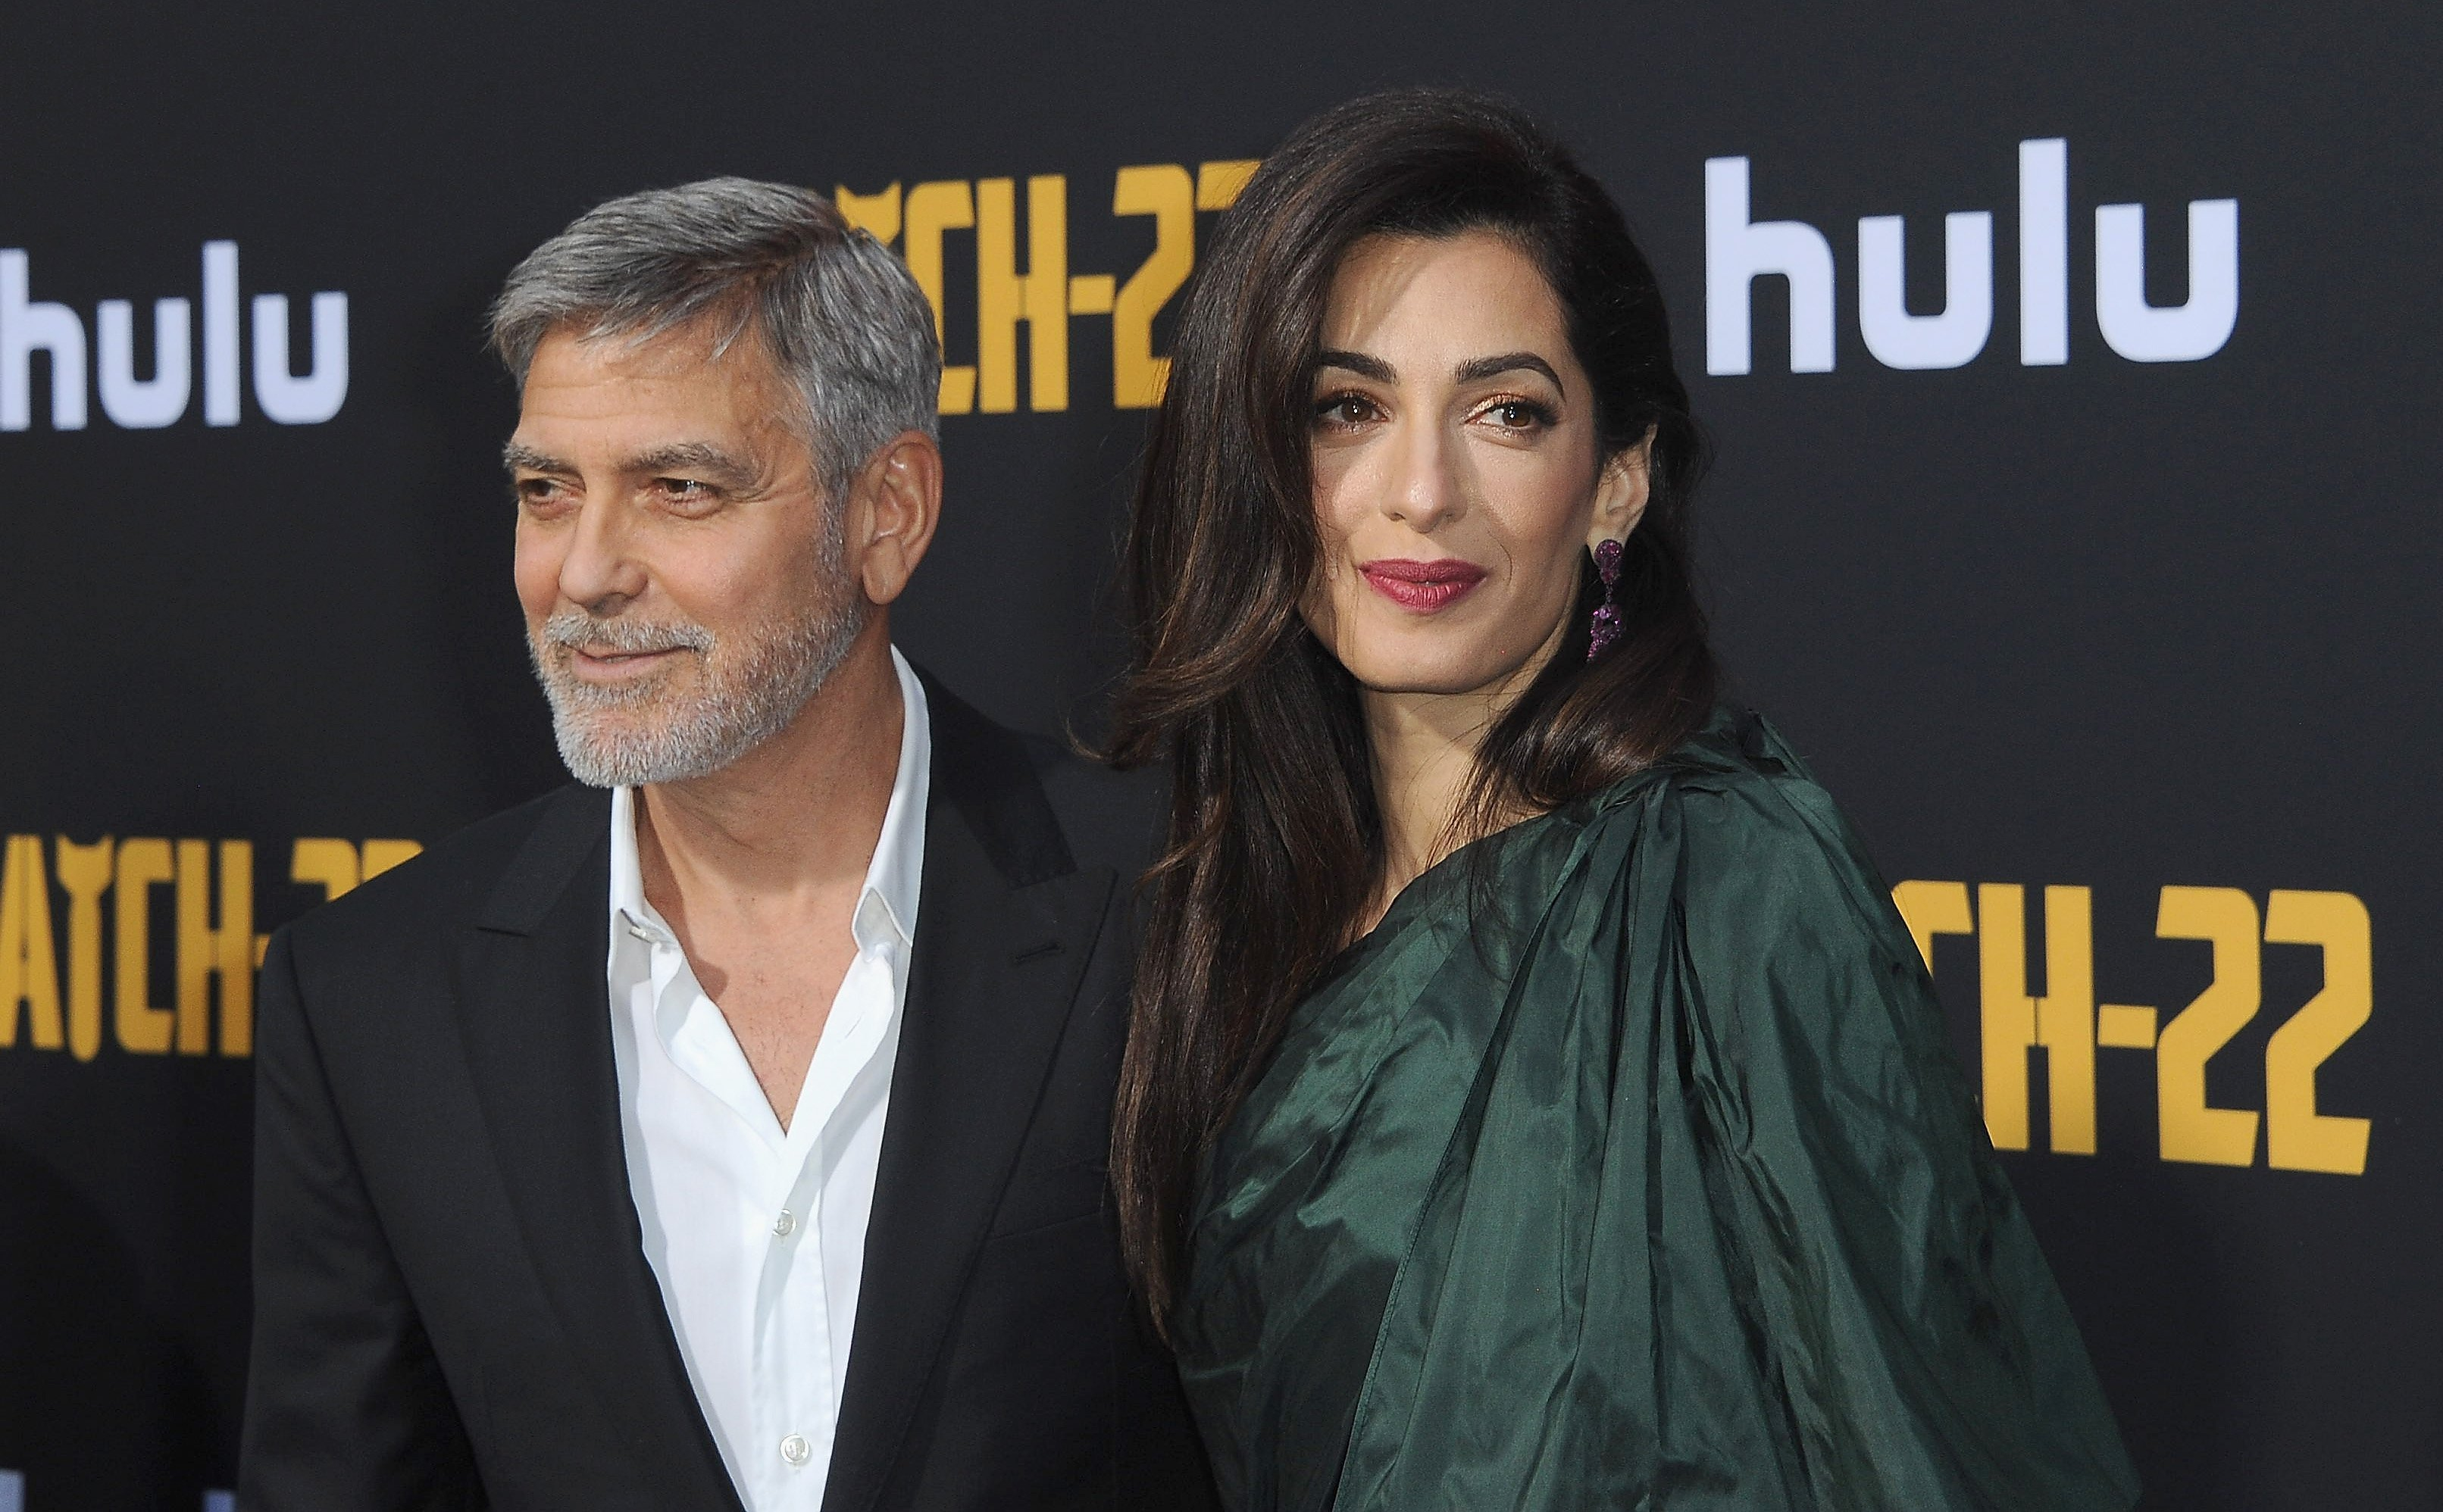 Photo of George Clooney and Amal Clooney | Photo: Getty Images